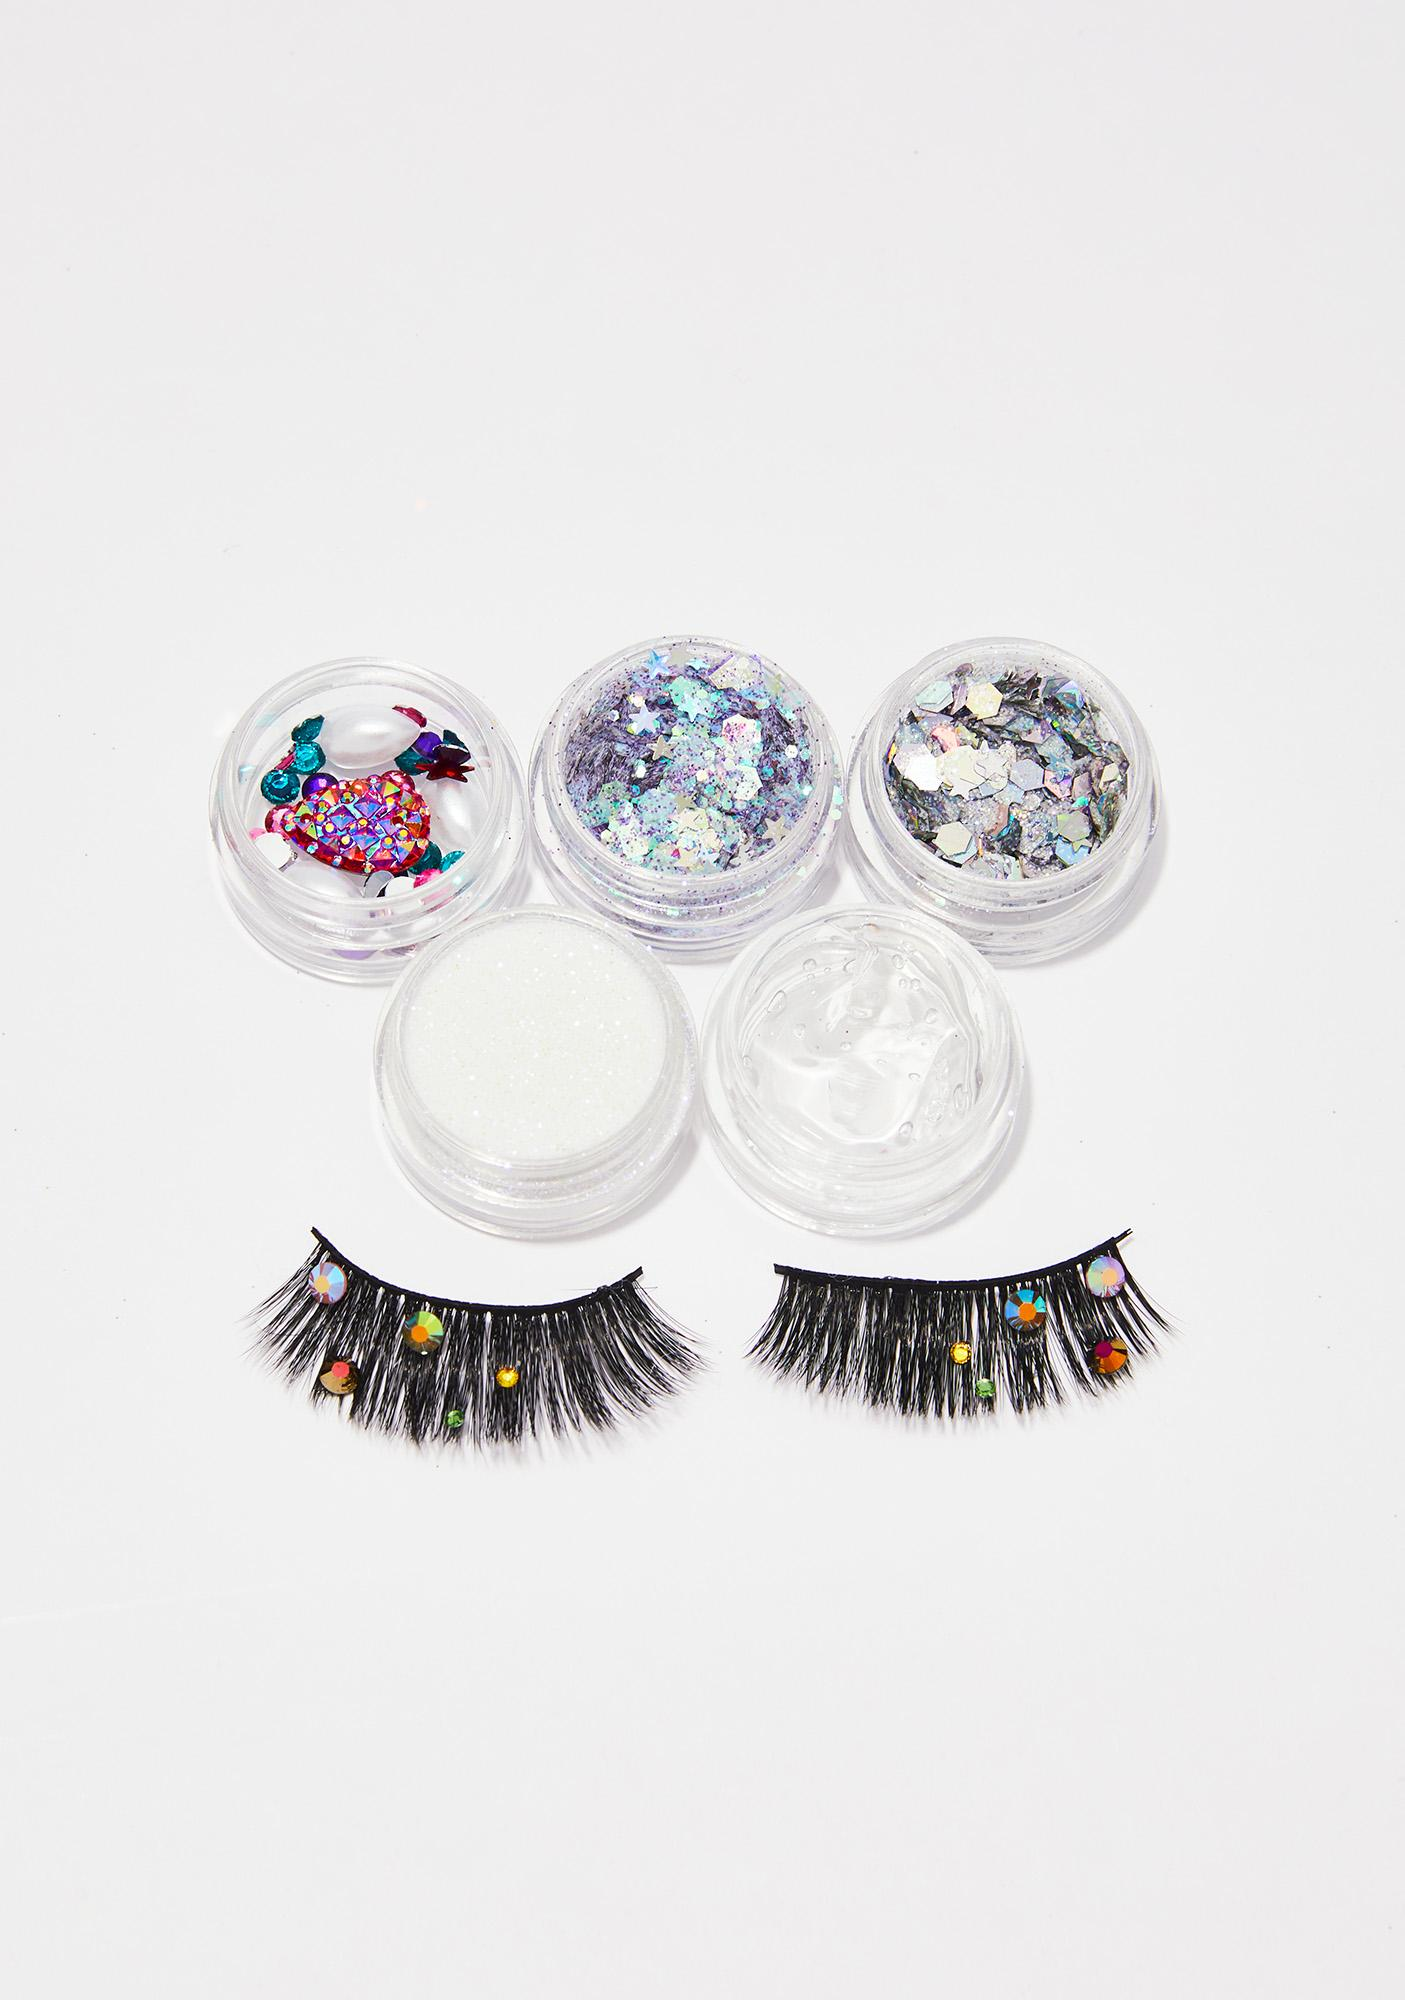 Gemstone Eyelash And Glitter Pack by From Nic Love